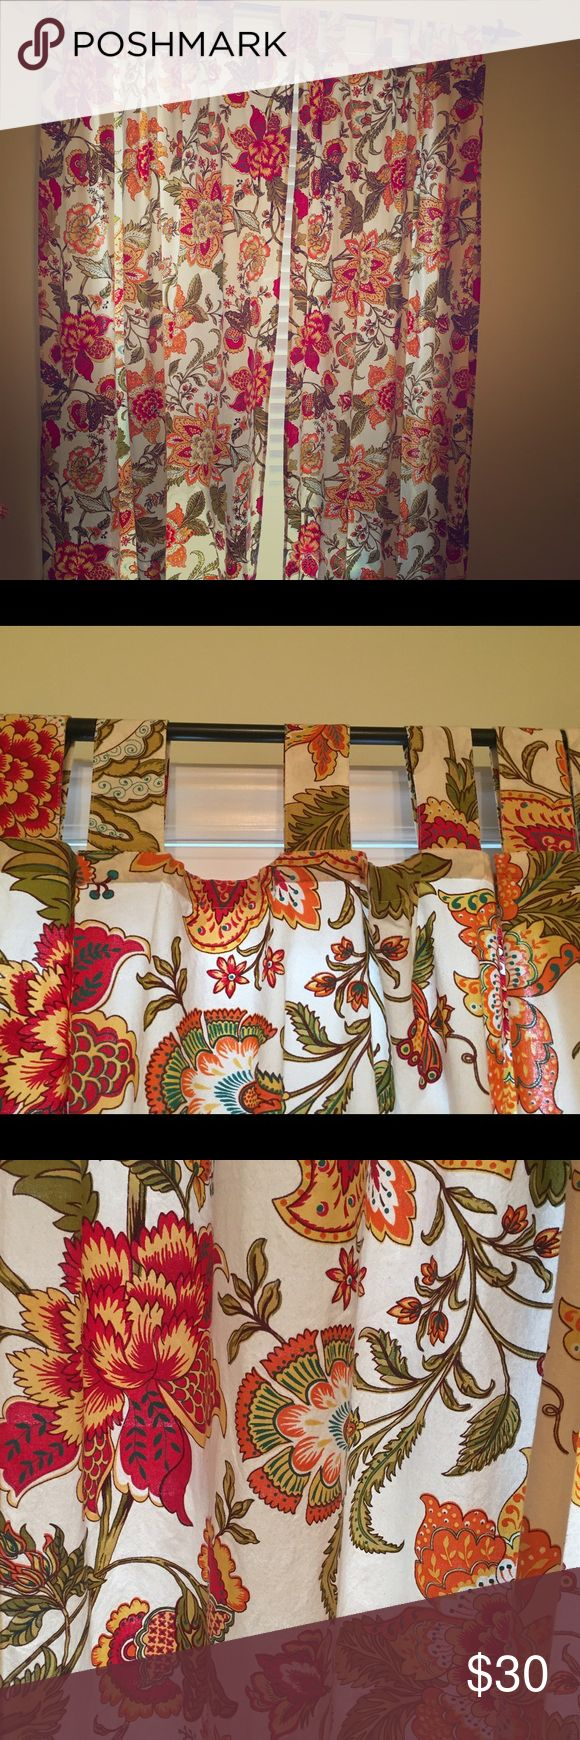 World market floral curtains Set of 2 panels. Approx- 42x80 world market Other